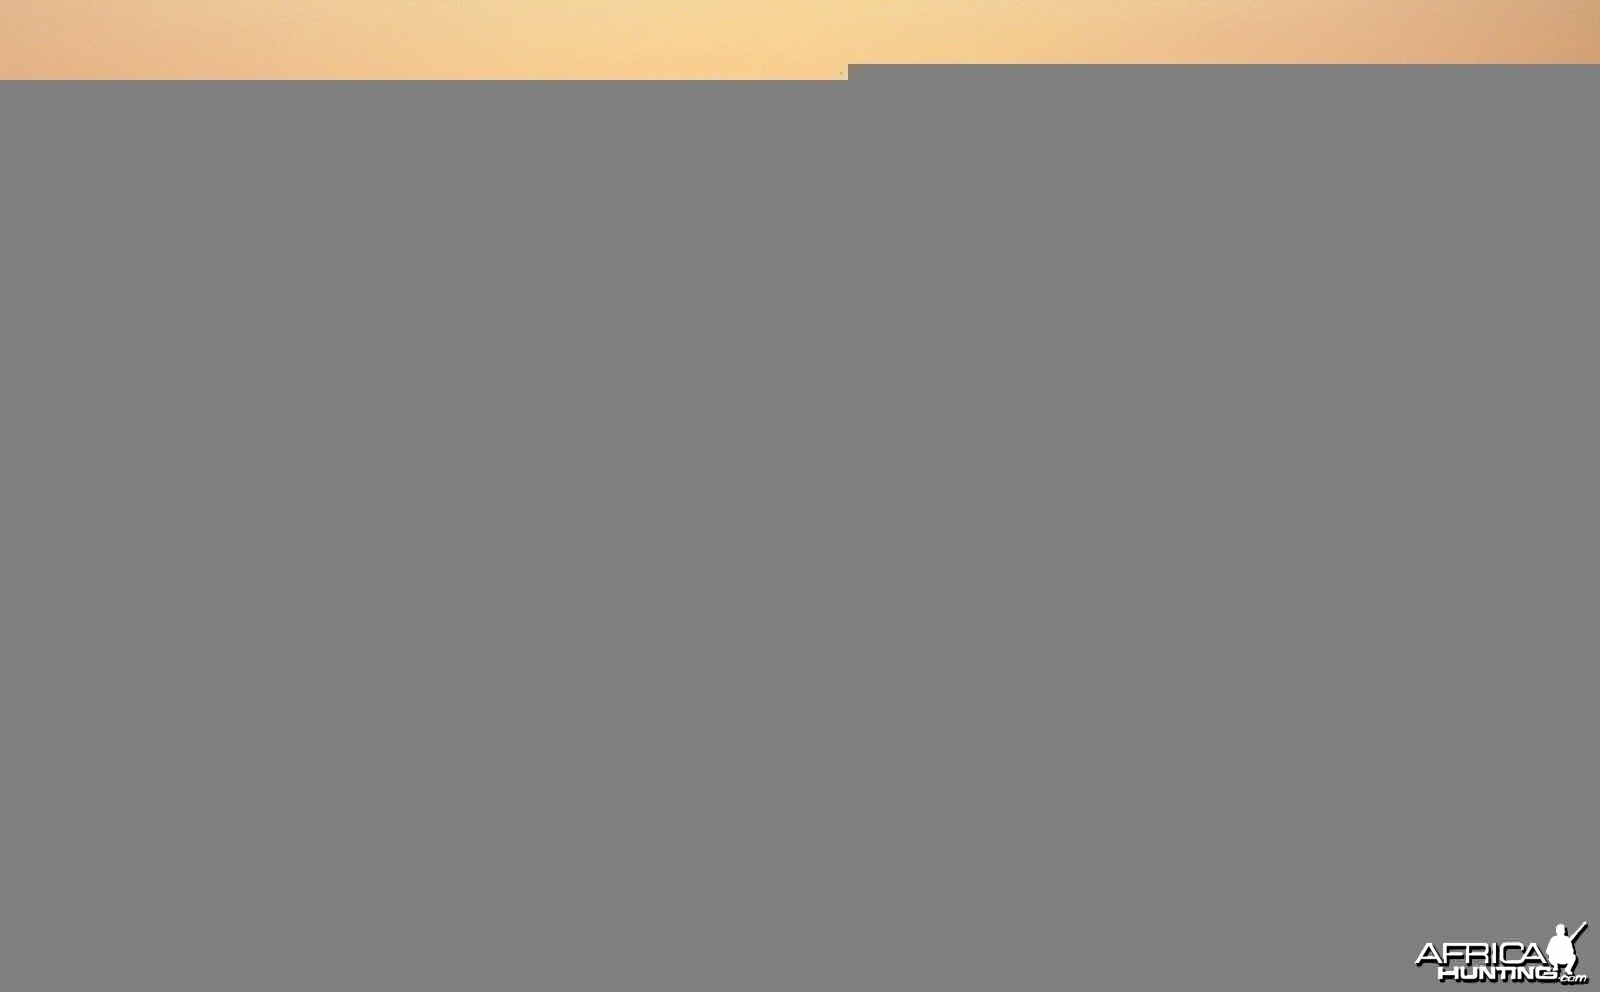 Sunrise over the Luwegu river in Tanzania